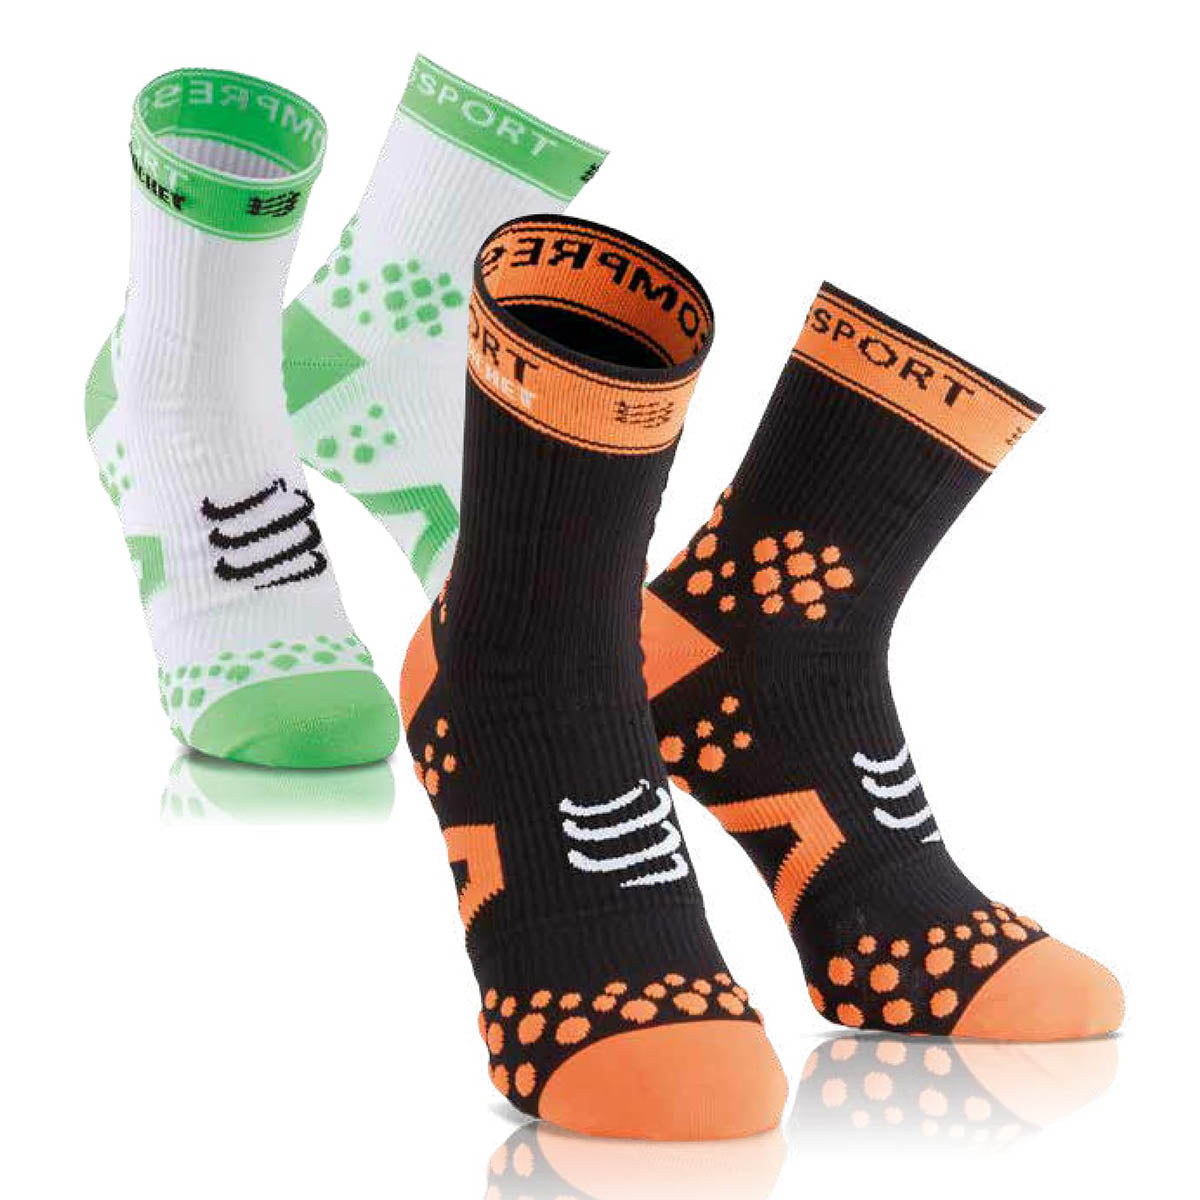 STRAPPING DOUBLE LAYER SOCKS (Coming Soon)